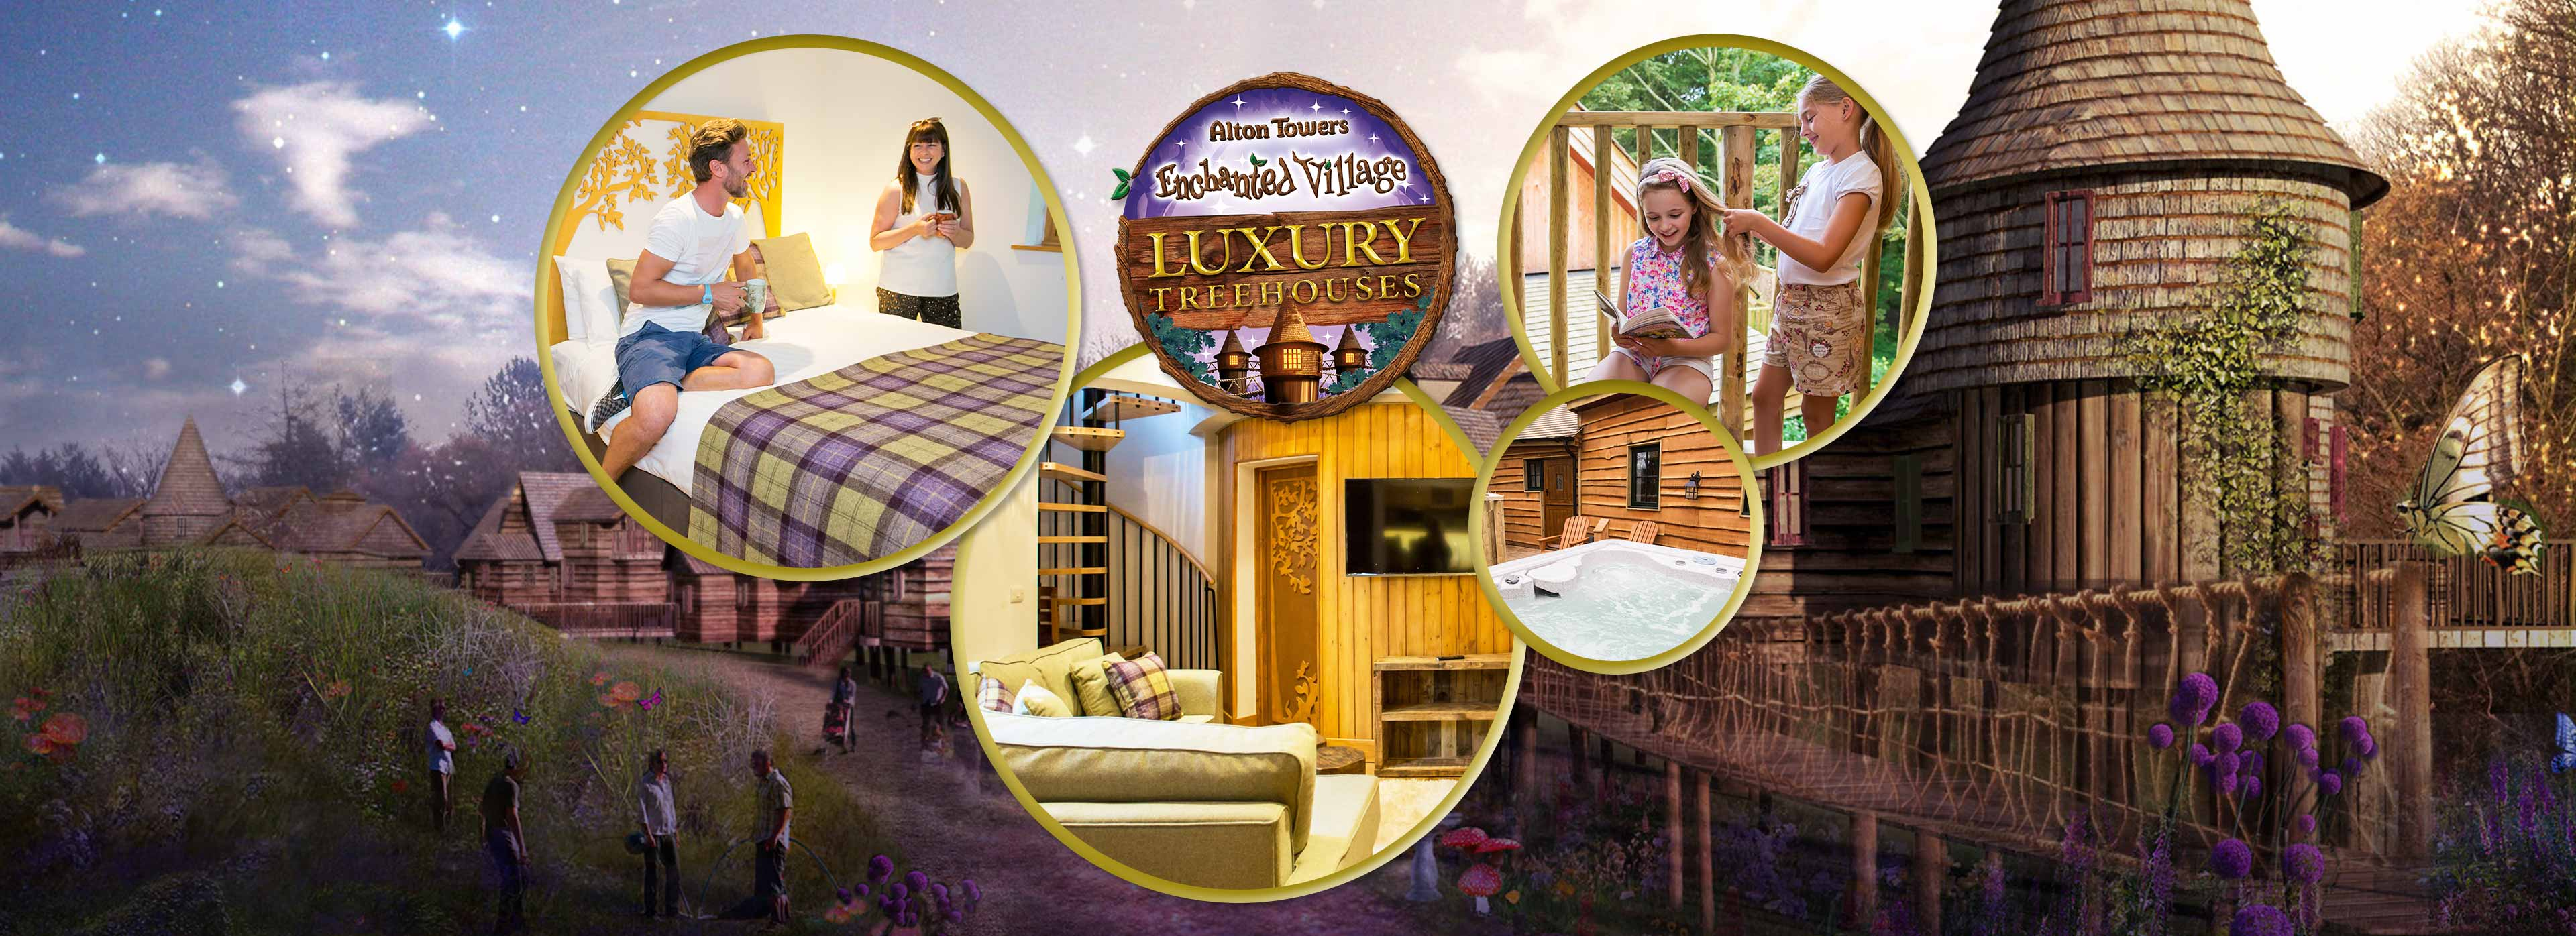 Enchanted Village Luxury Treehouses at the Alton Towers Resort